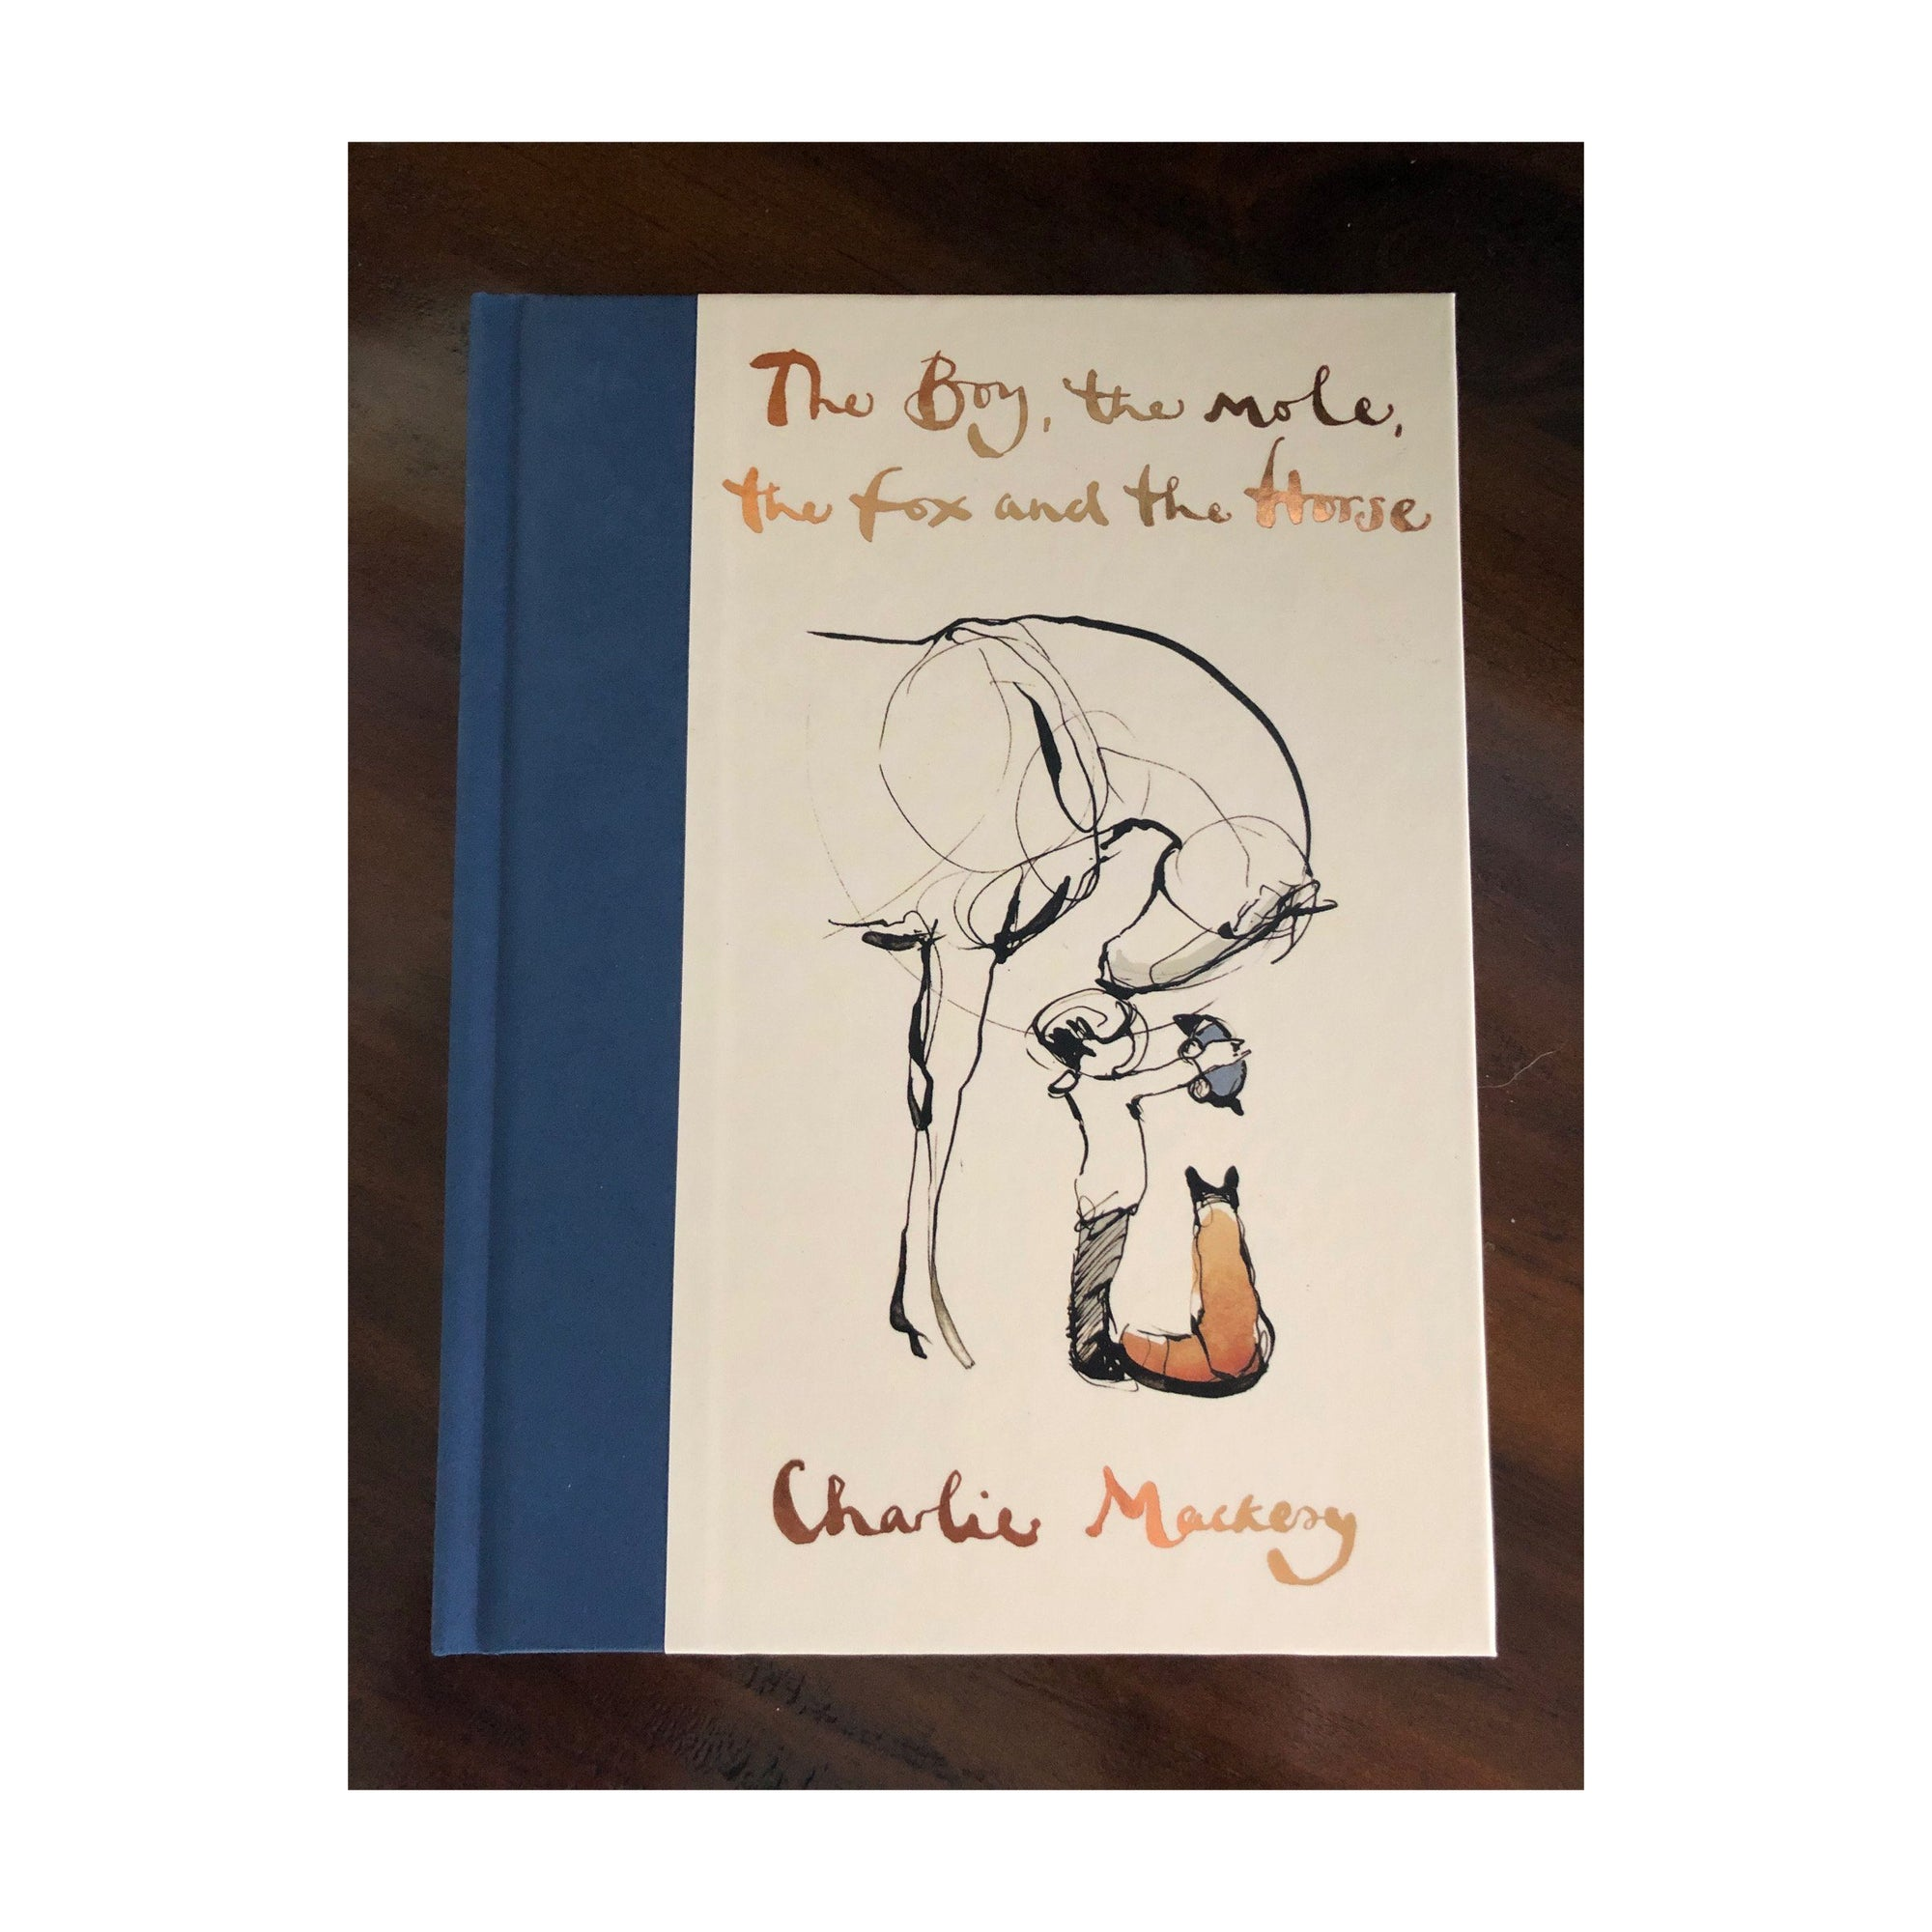 The Boy, the Mole, the Fox and the Horse Gift Books Charlie Mackesy